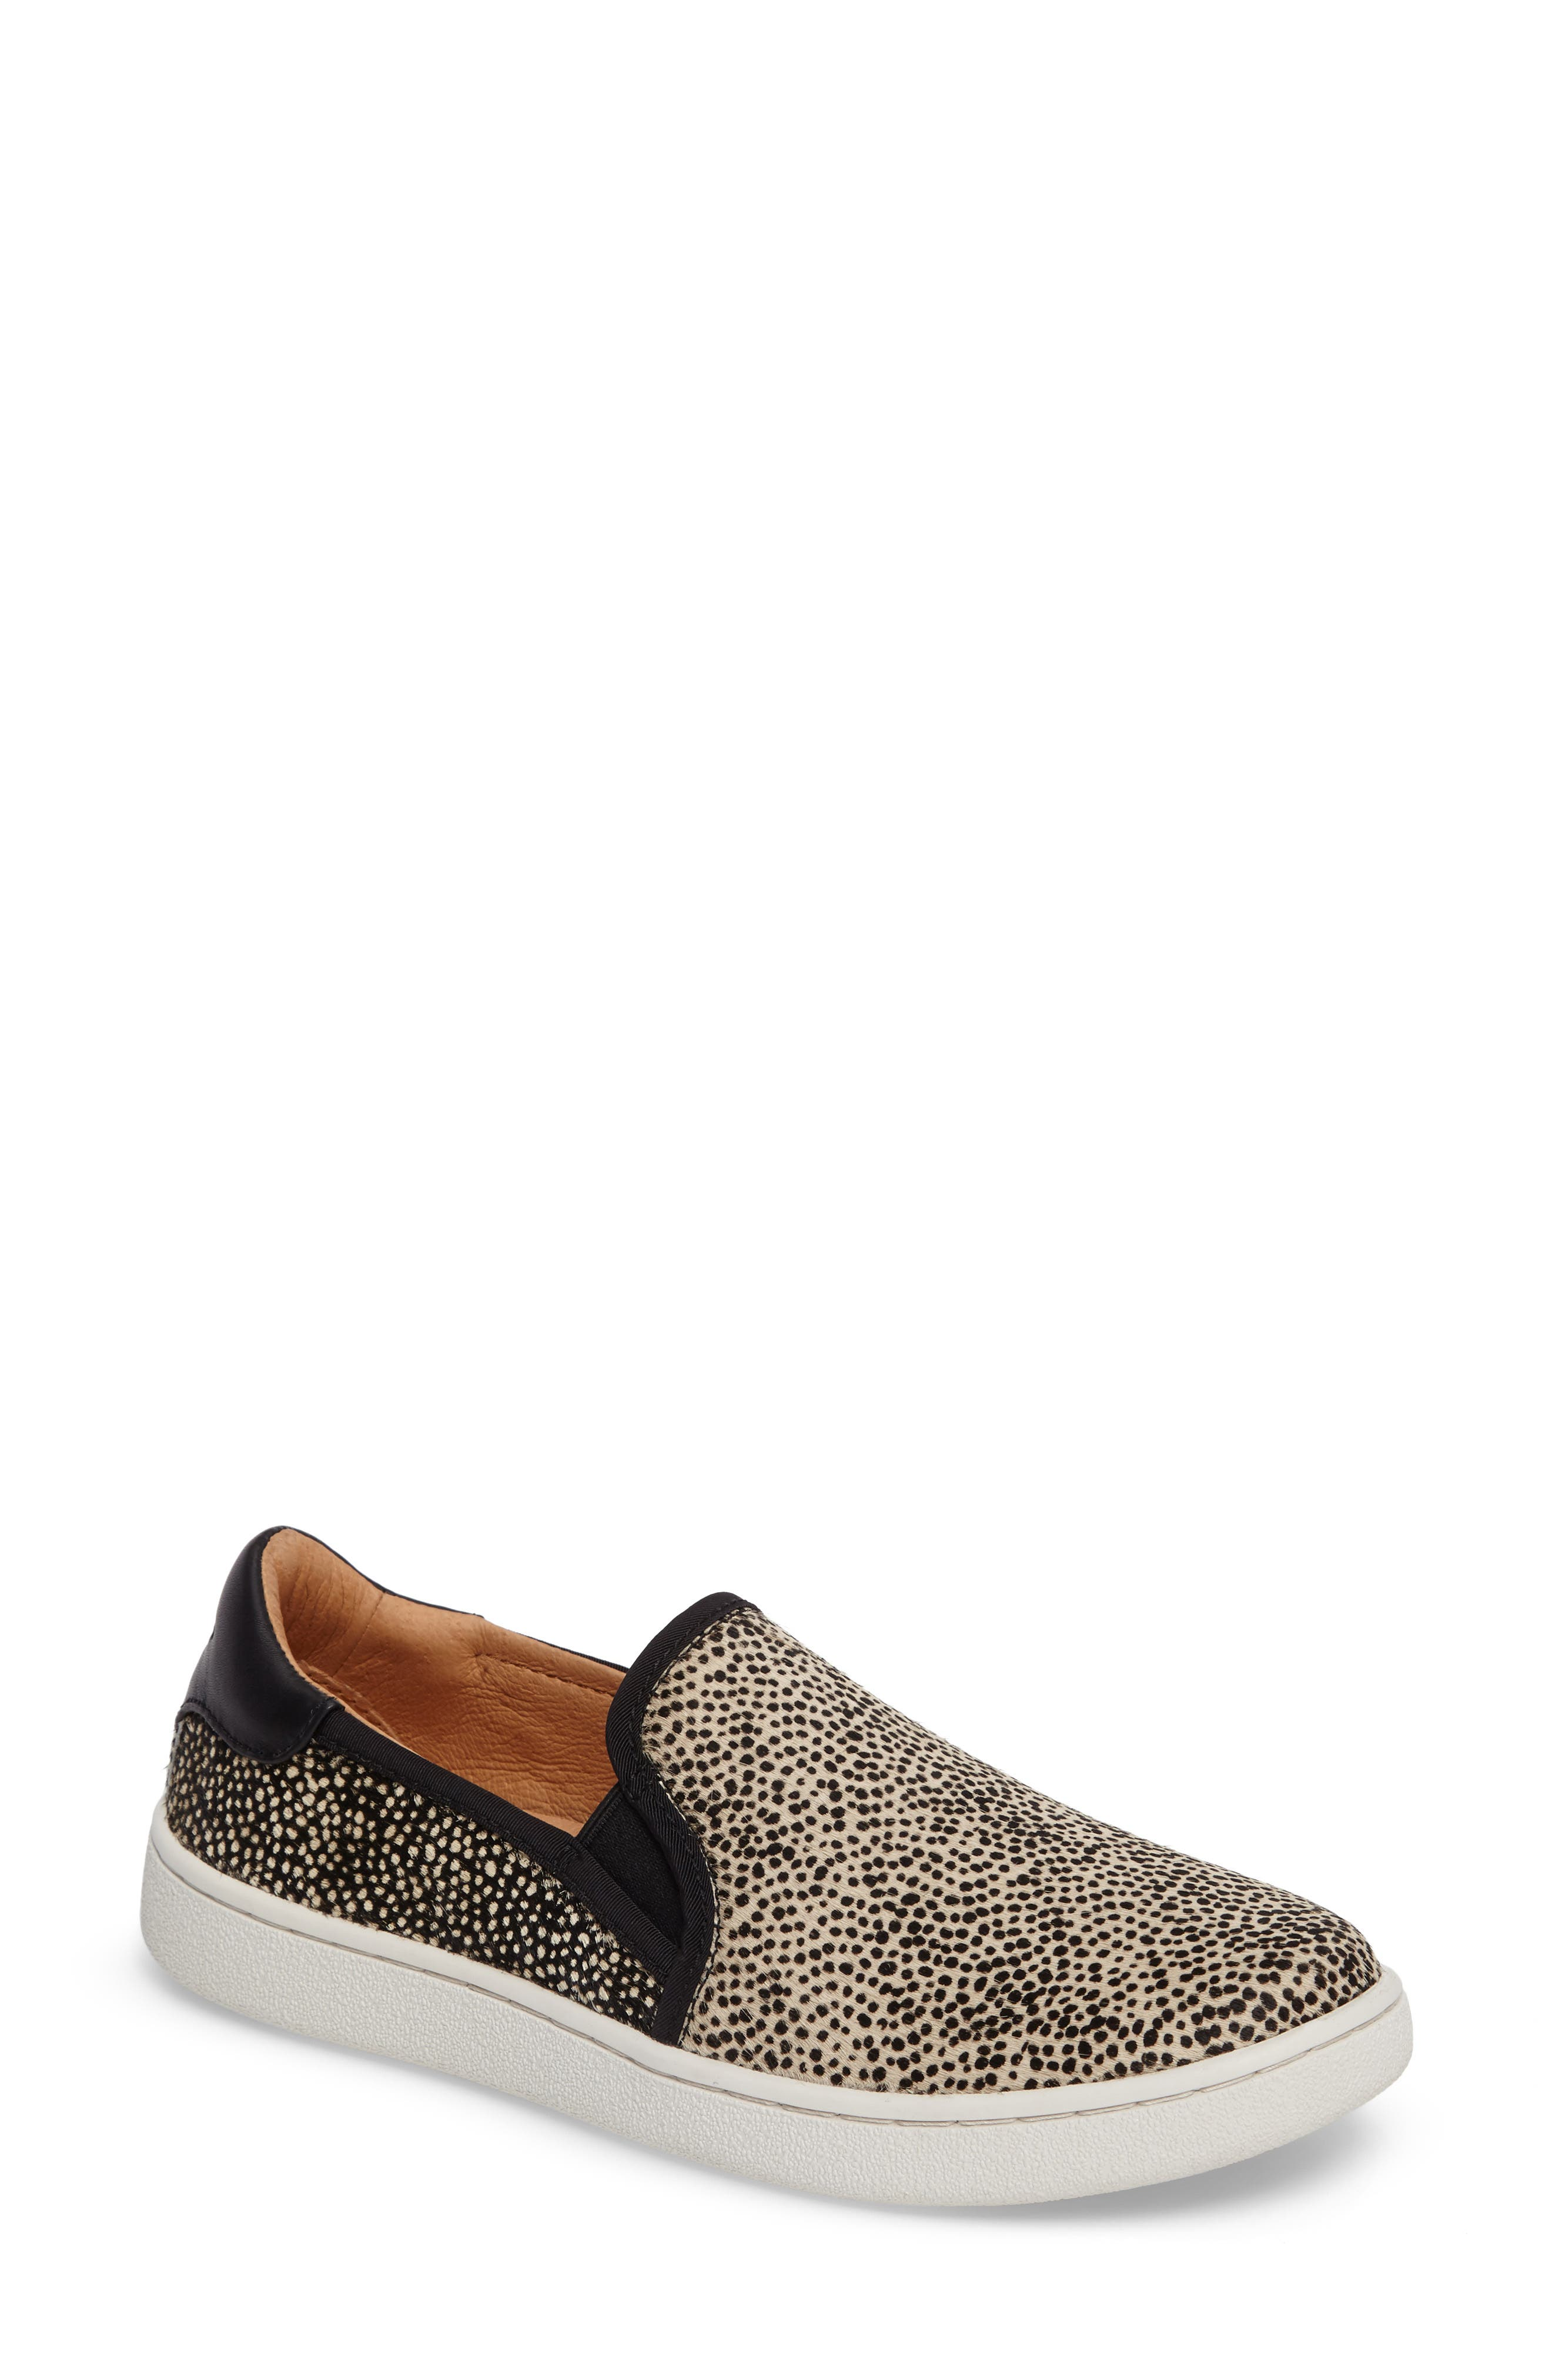 Cas Exotic Genuine Calf Hair Slip-On Sneaker,                             Main thumbnail 1, color,                             Black/ Tan Dotted Leather